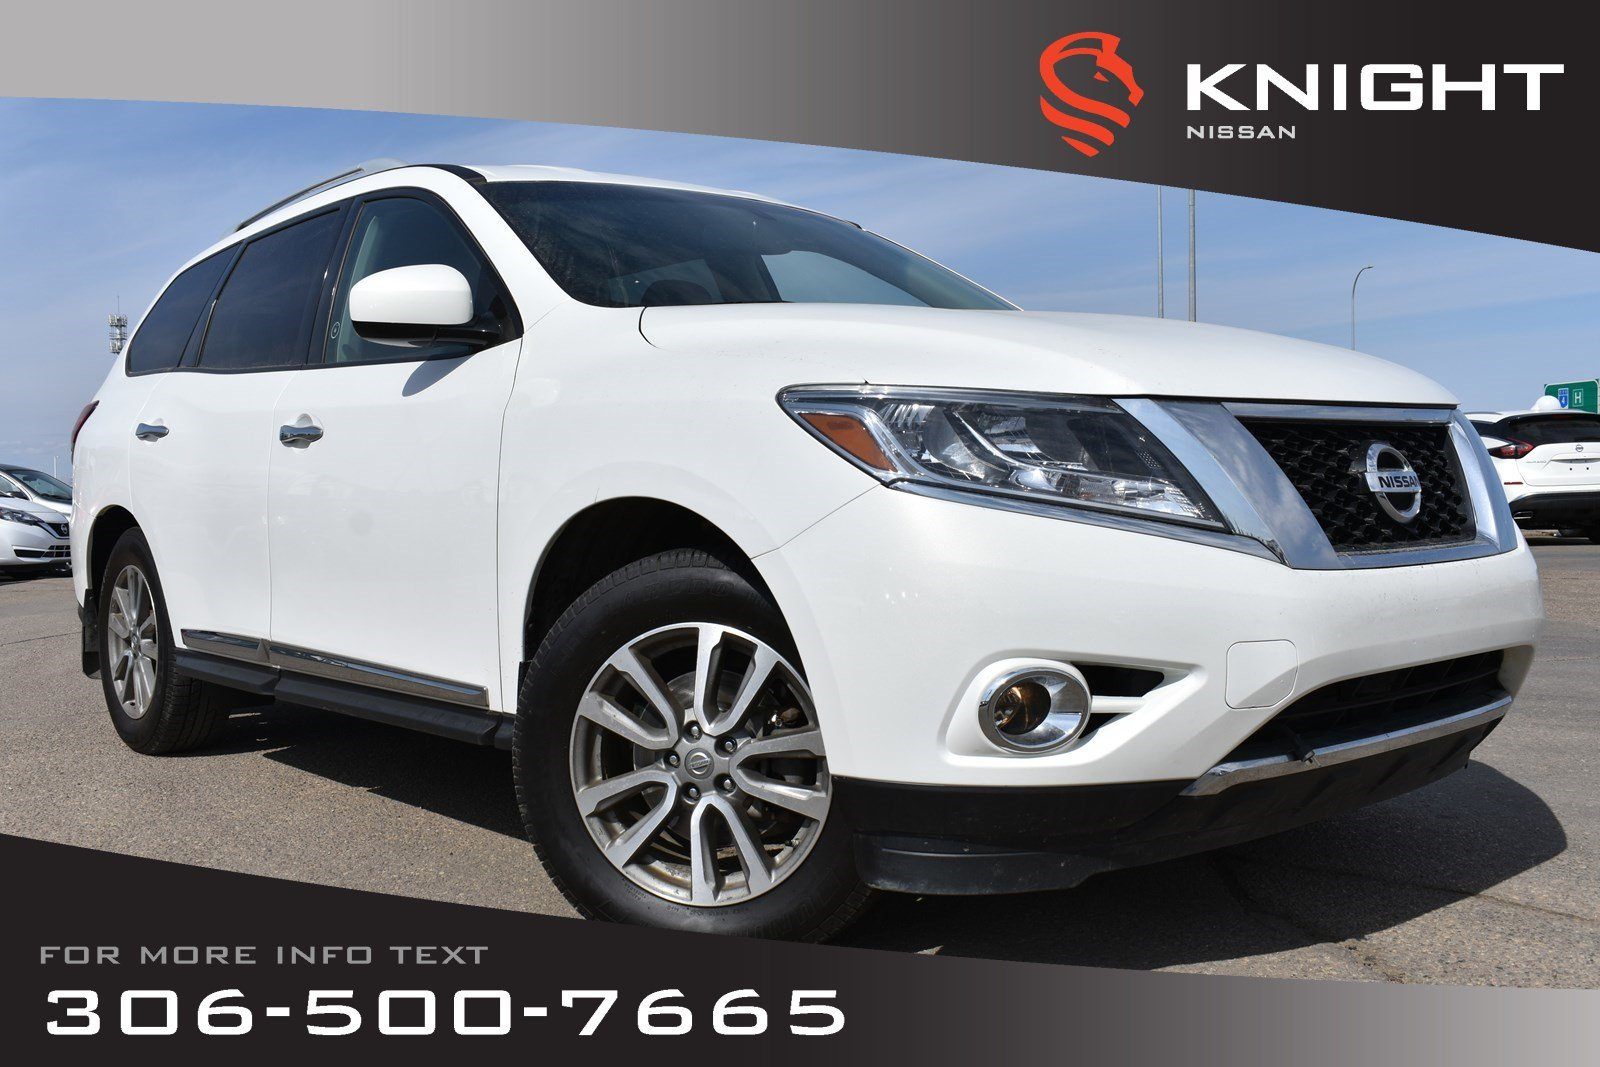 Pre-Owned 2014 Nissan Pathfinder SL Leather | Receiver Hitch | Remote Start | Bluetooth |